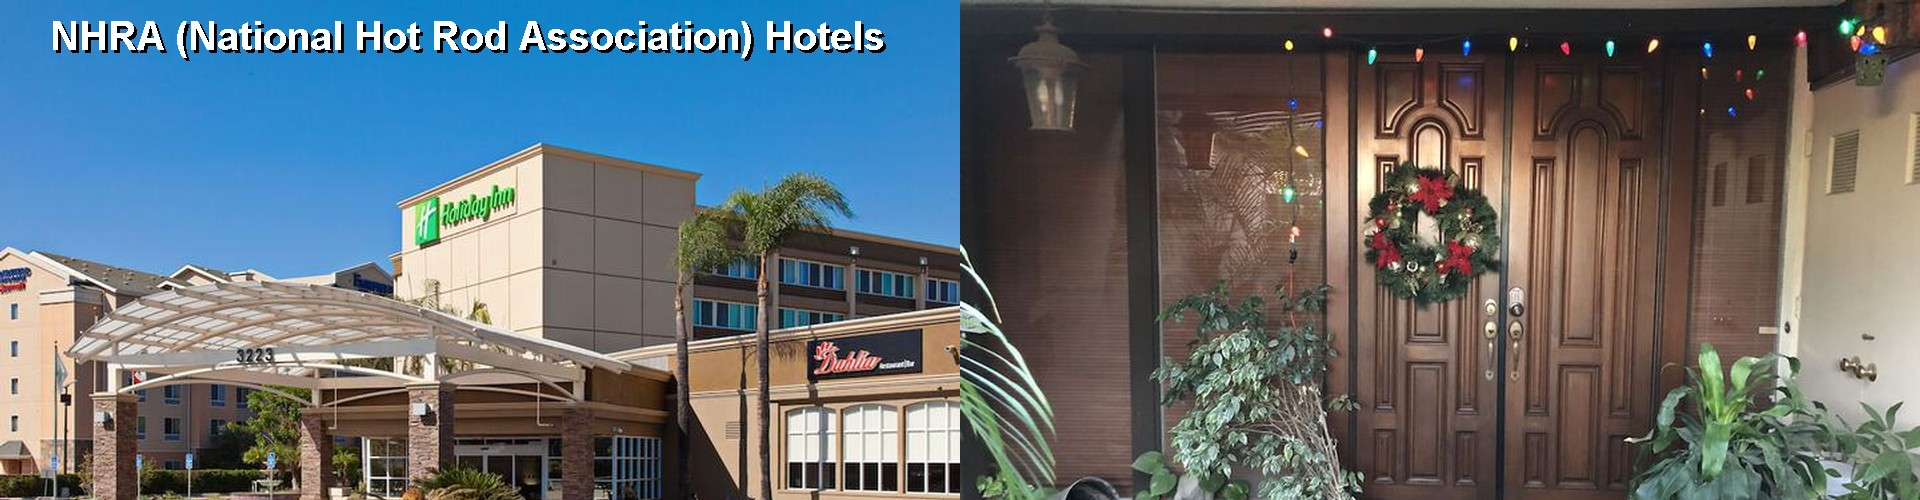 5 Best Hotels near NHRA (National Hot Rod Association)